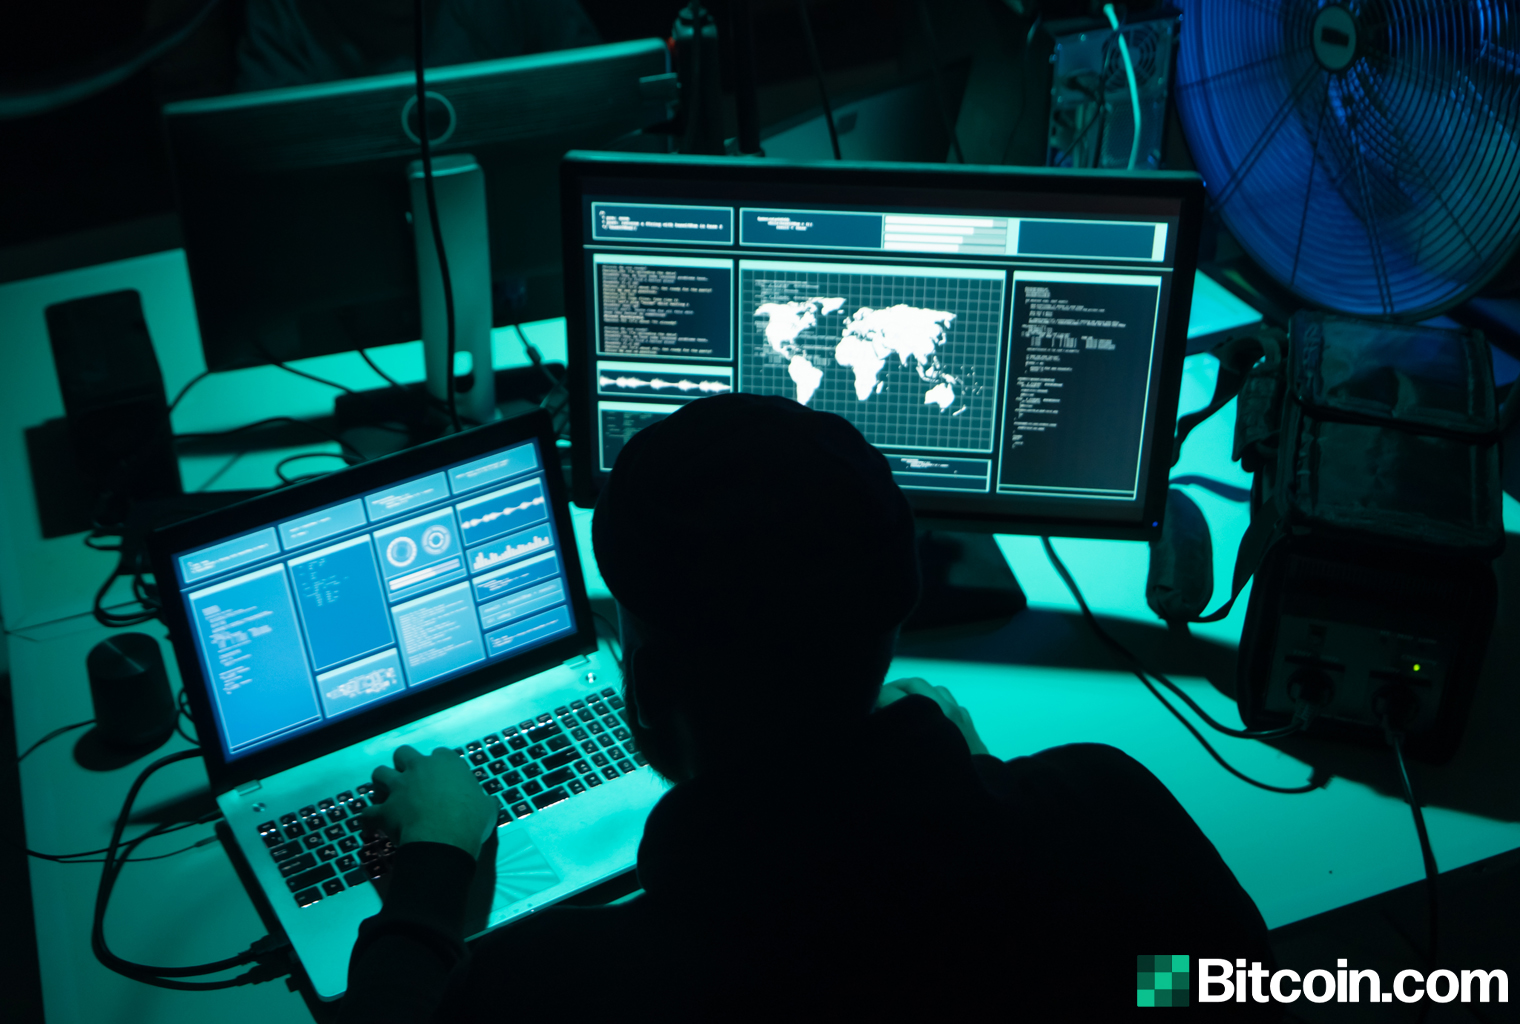 Berlusconi Admins Disappear — Darknet Users Rush to Find Alternatives